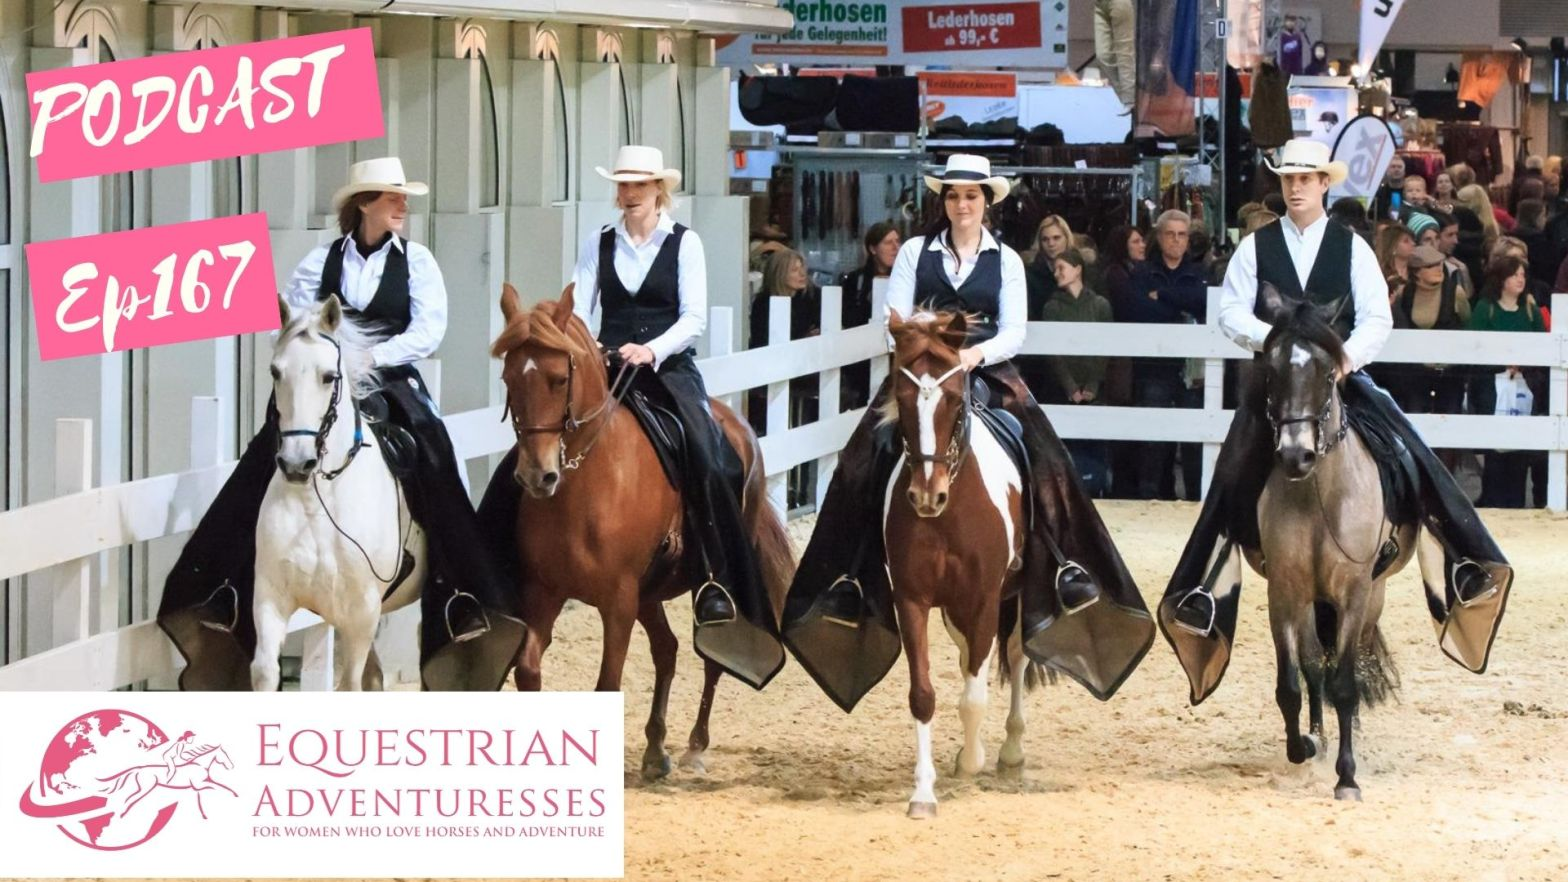 Equestrian Adventuresses Travel and Horse Podcast Ep 167 - Paso Fino - The Smoothest Horse in the World